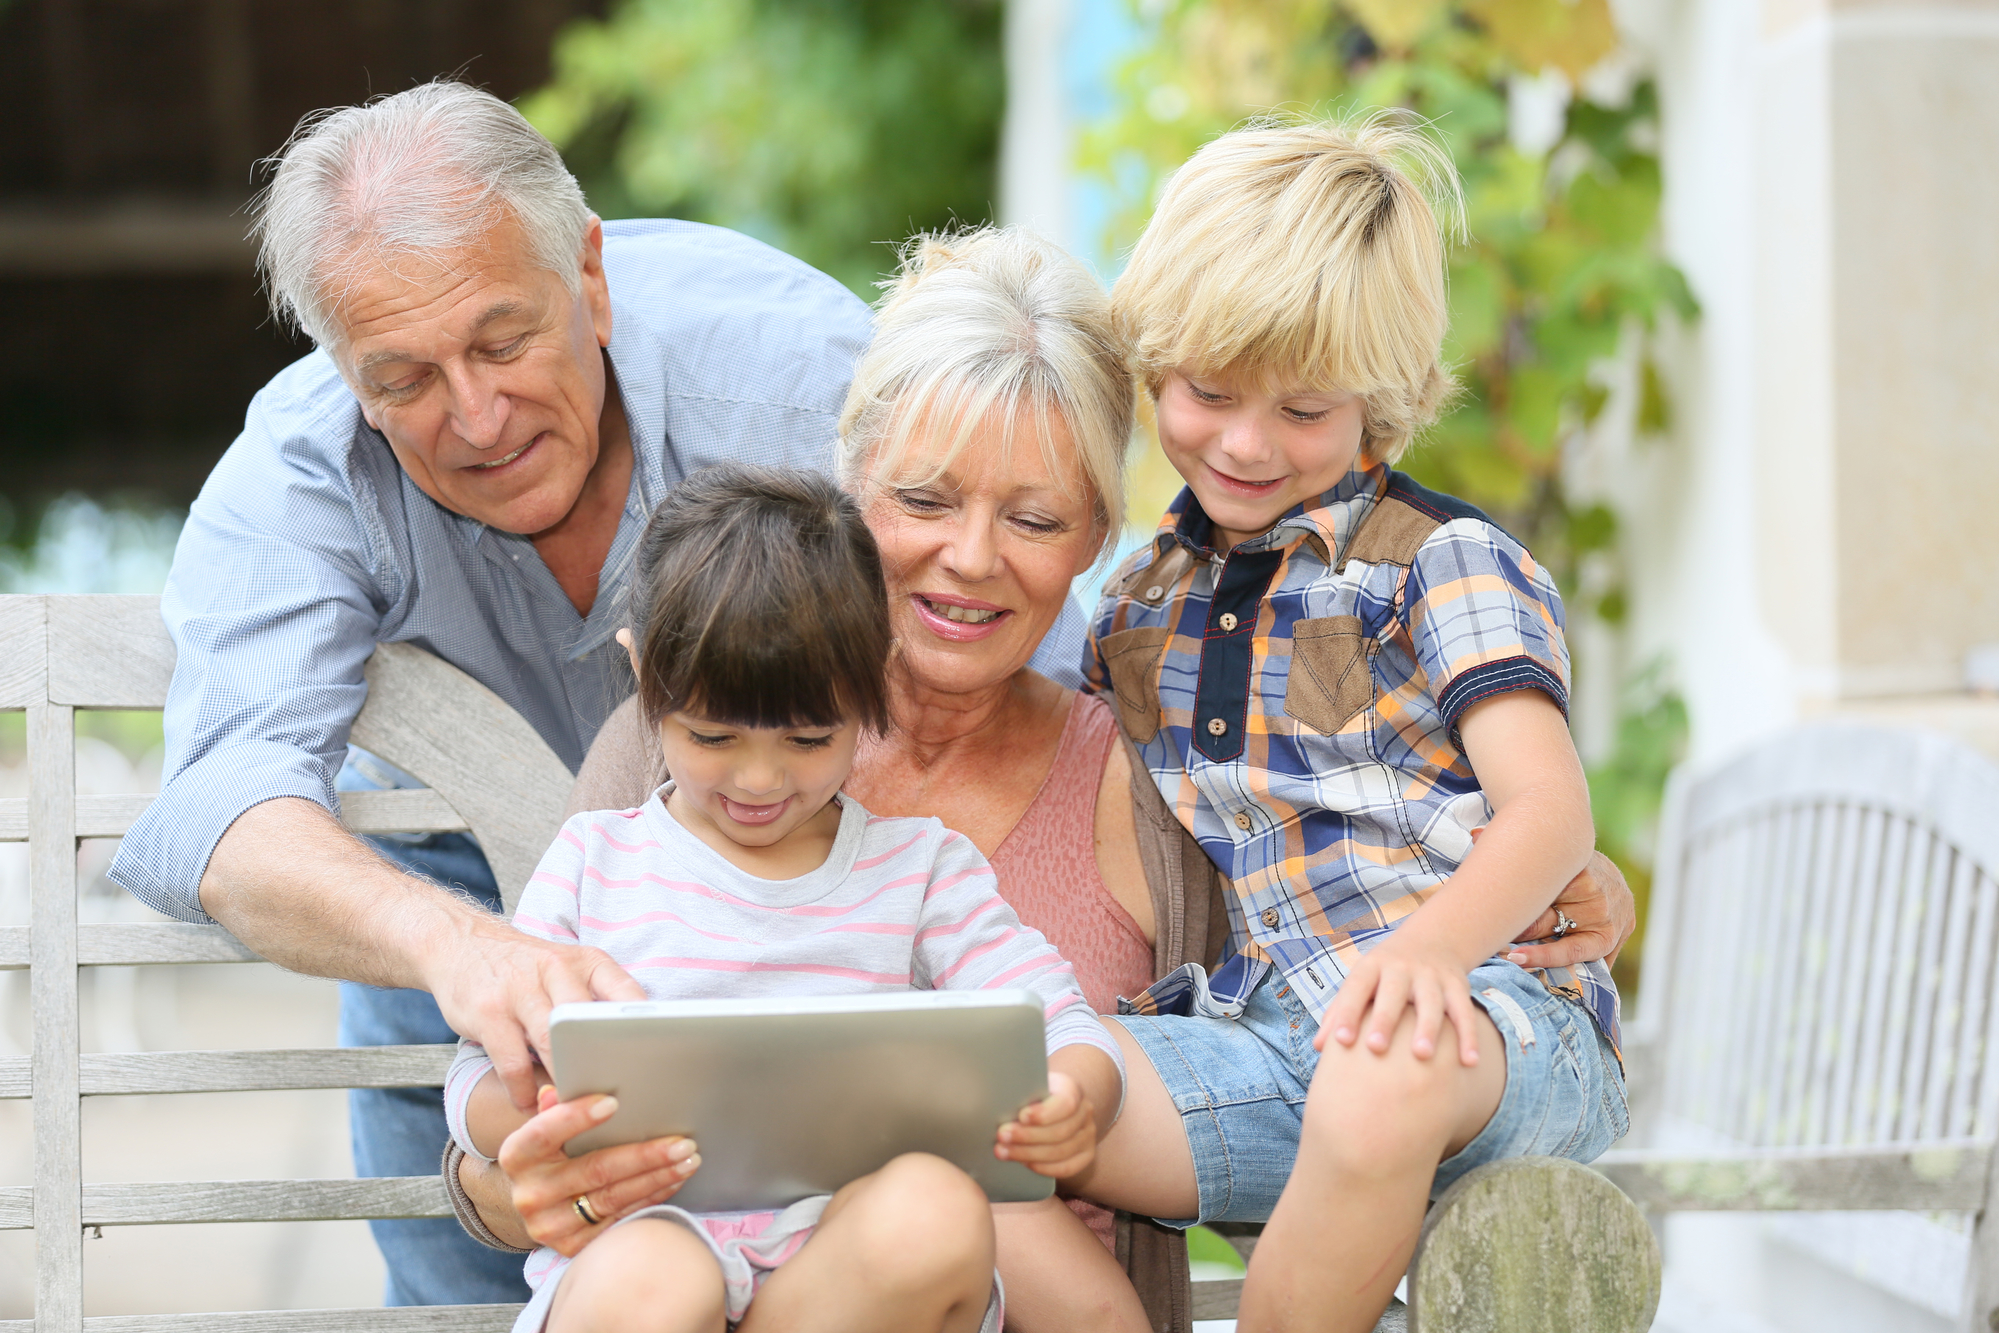 Grandparents with their Granddaughter and Grandson looking at a Tablet